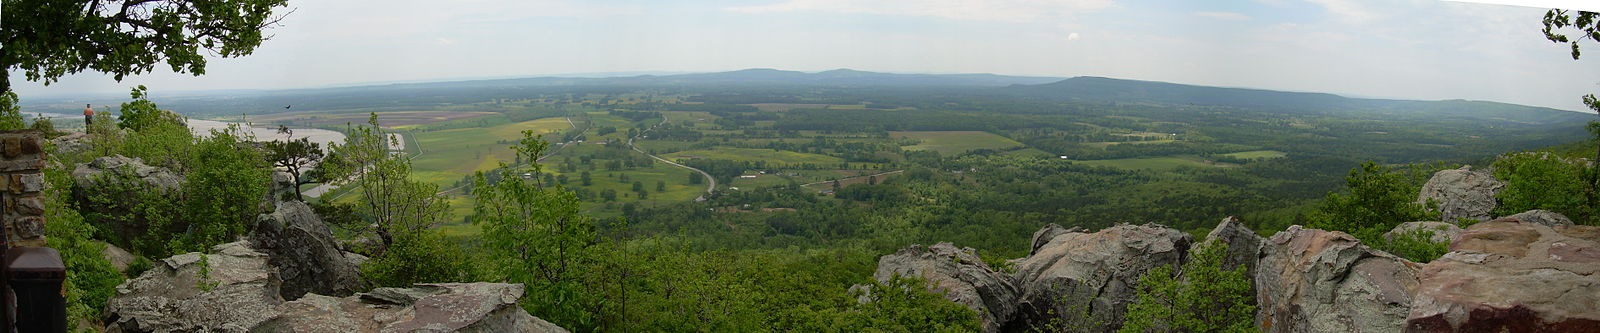 Panoramic view from Petit Jean Mountain overlook. Petit Jean's grave is just below, out of sight of the photo. The Arkansas River can be seen on the left. Petit jean panorama.JPG